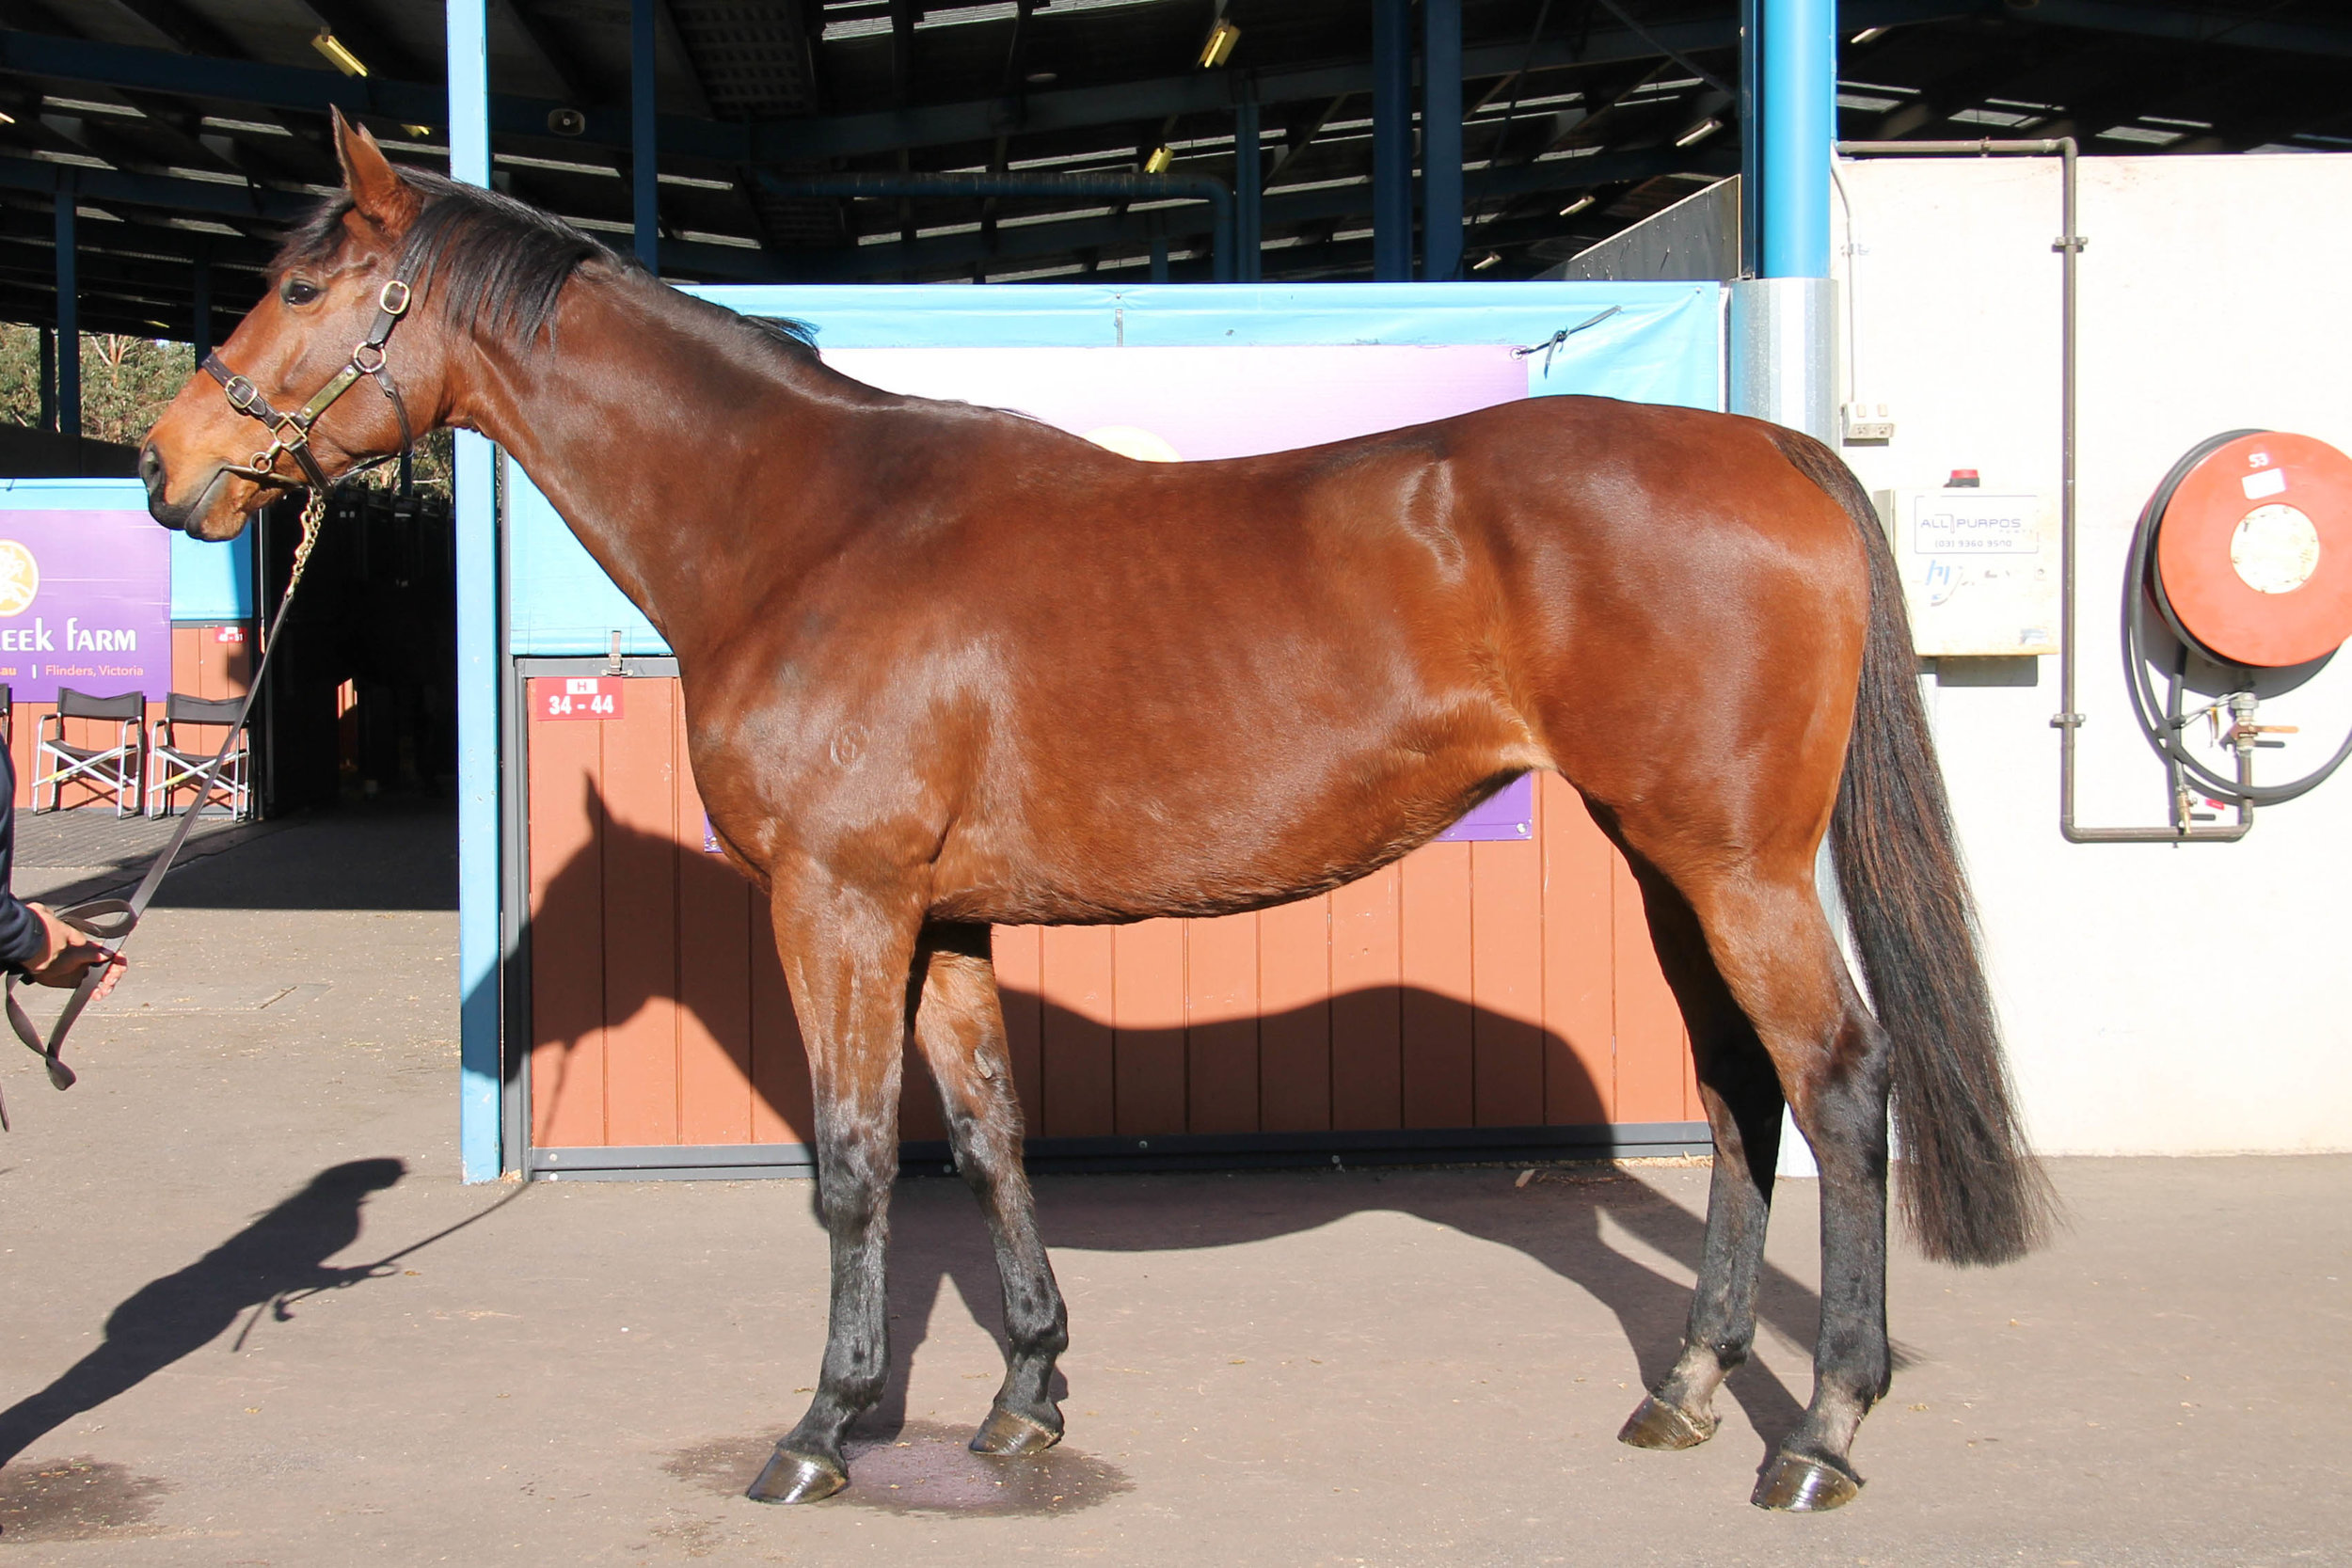 Lot 669 - Lashezz - In Foal to Holler